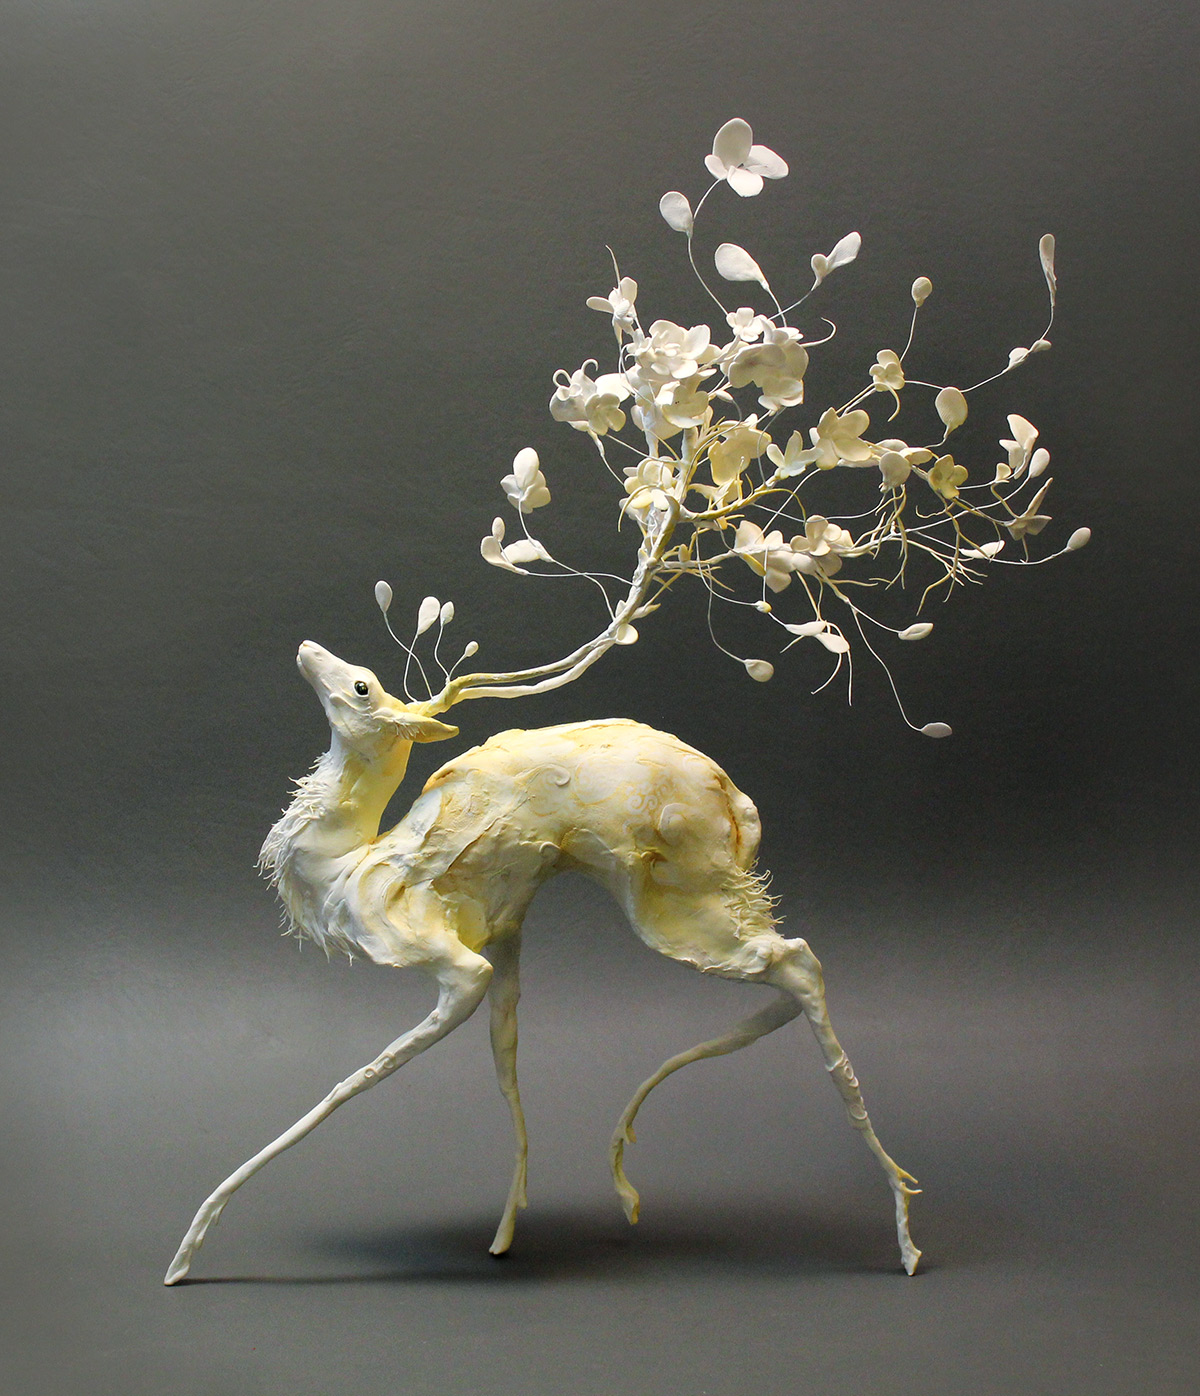 Surrealist Sculptures by Ellen Jewett Merge Plant and Animal Life | Colossal